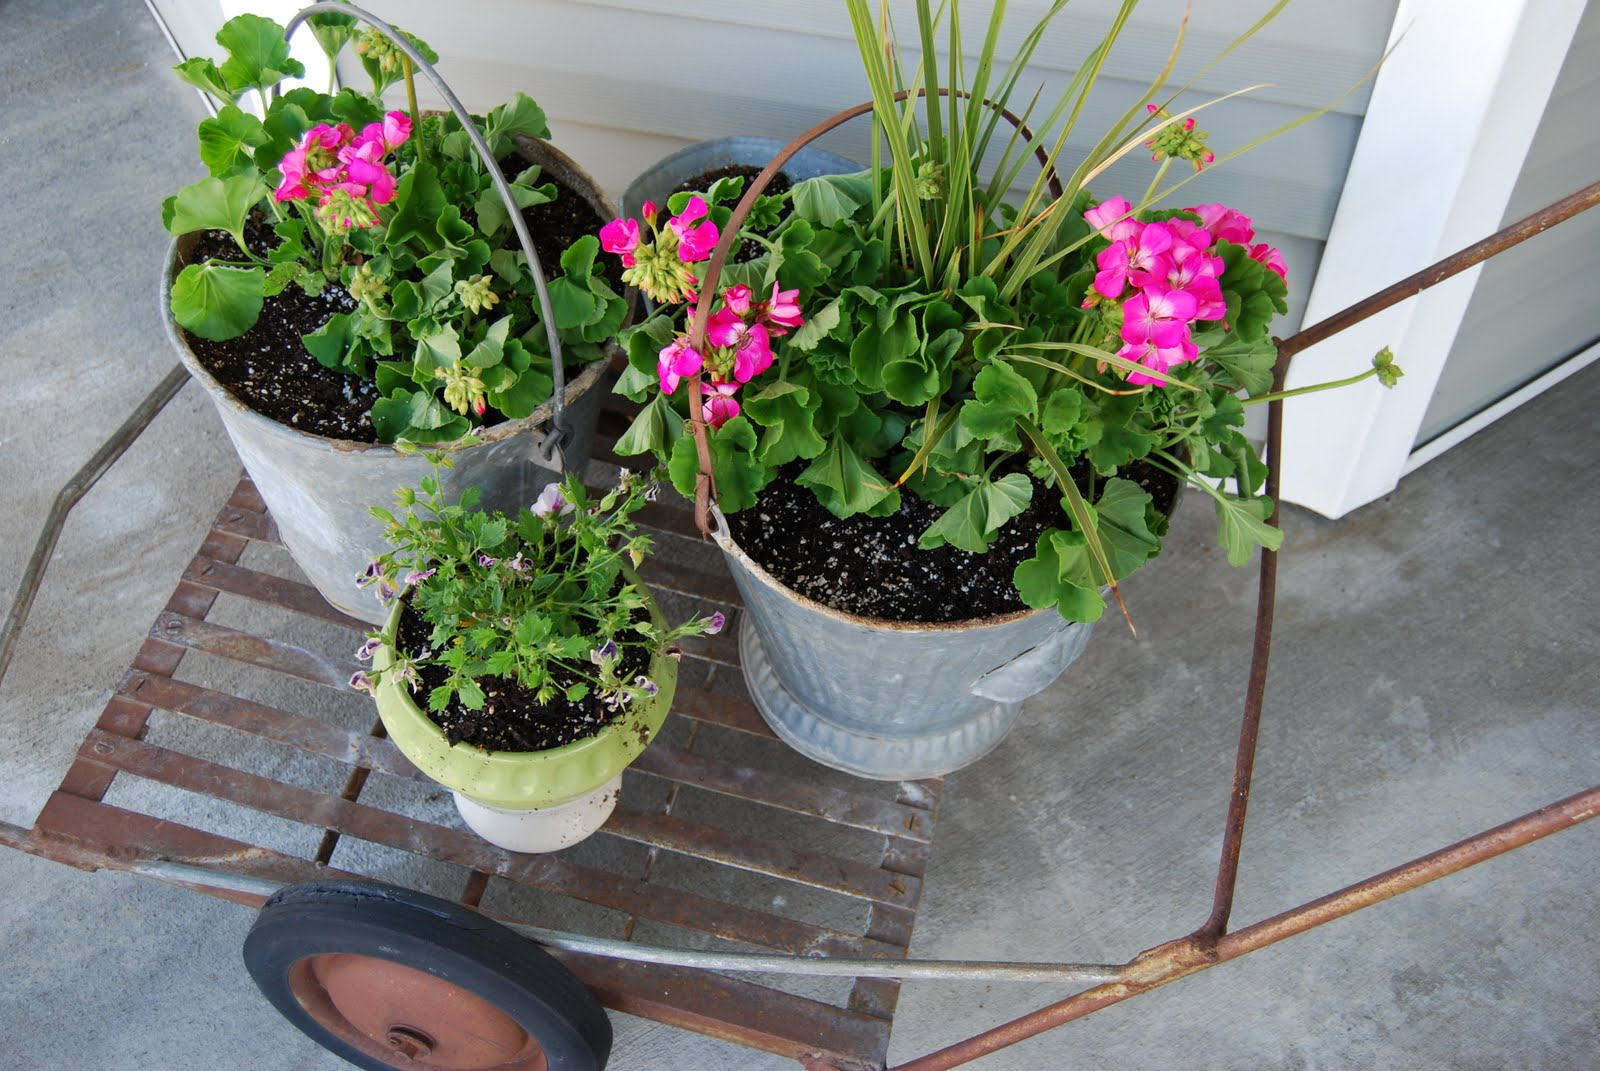 Chikkaboom design picture perfect porch ideas wire baskets found in the kitchen section of a second hand store work great for planters and hanging baskets workwithnaturefo